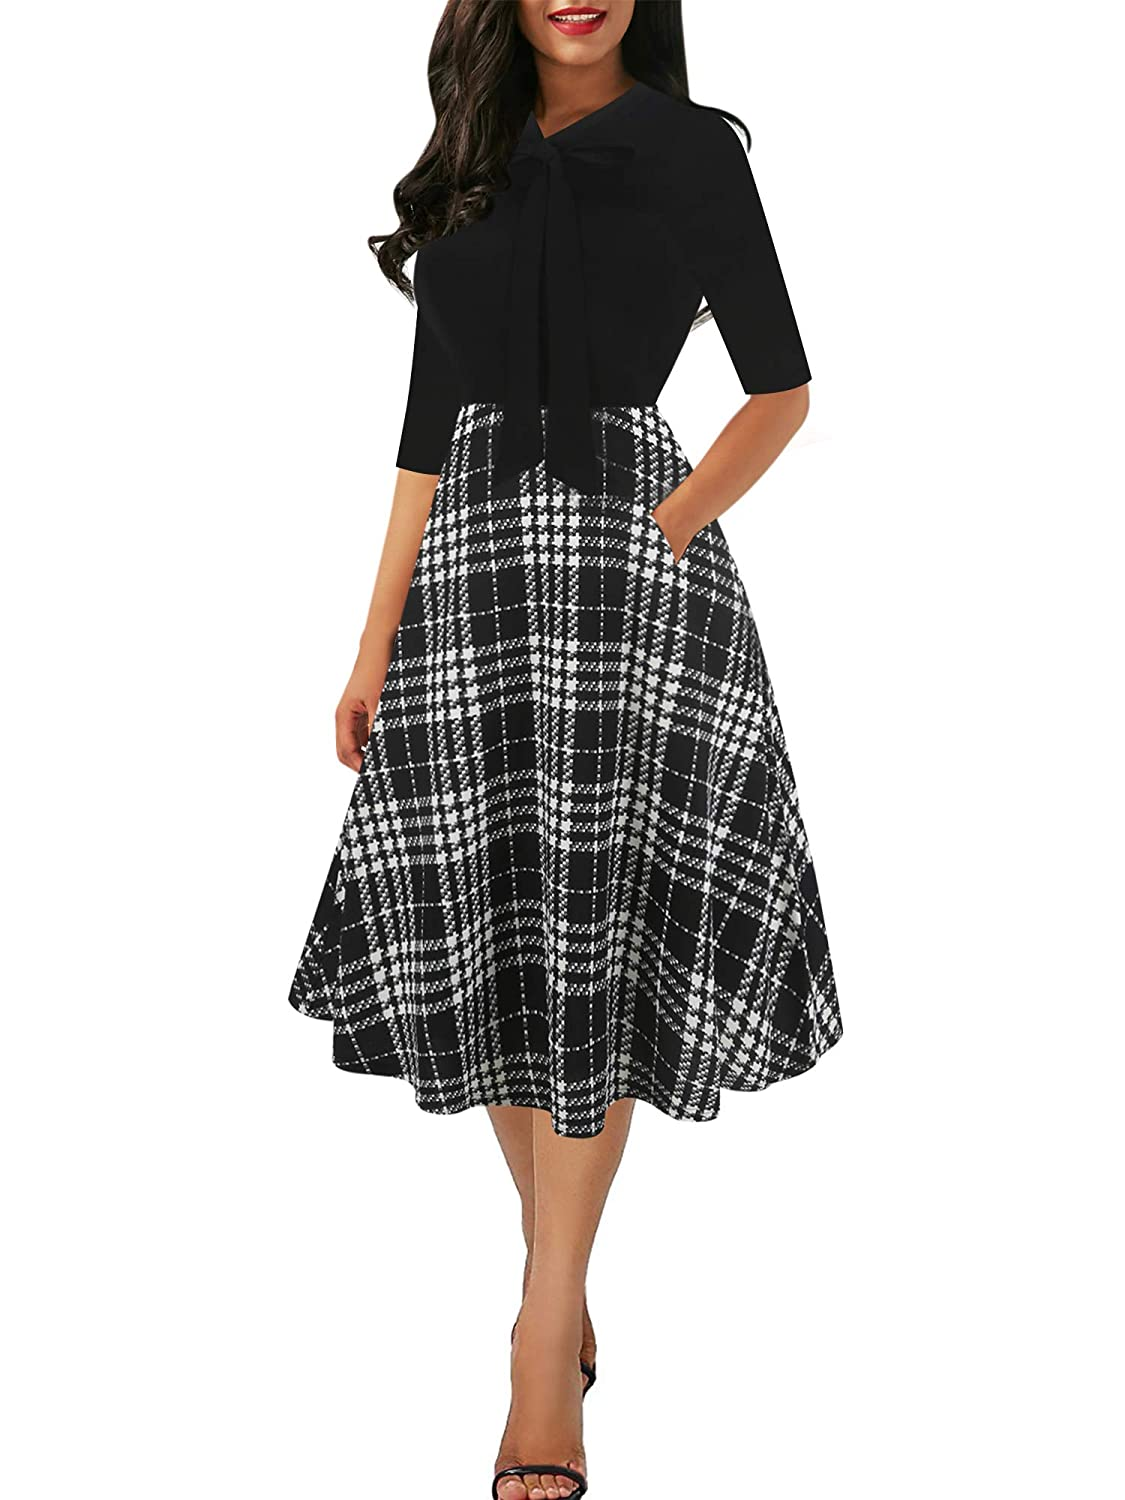 efb2be6044d8b oxiuly Women's Vintage V-Neck Sleveless Casual A-Line Work Party Swing Dress  OX278: Amazon.ca: Clothing & Accessories